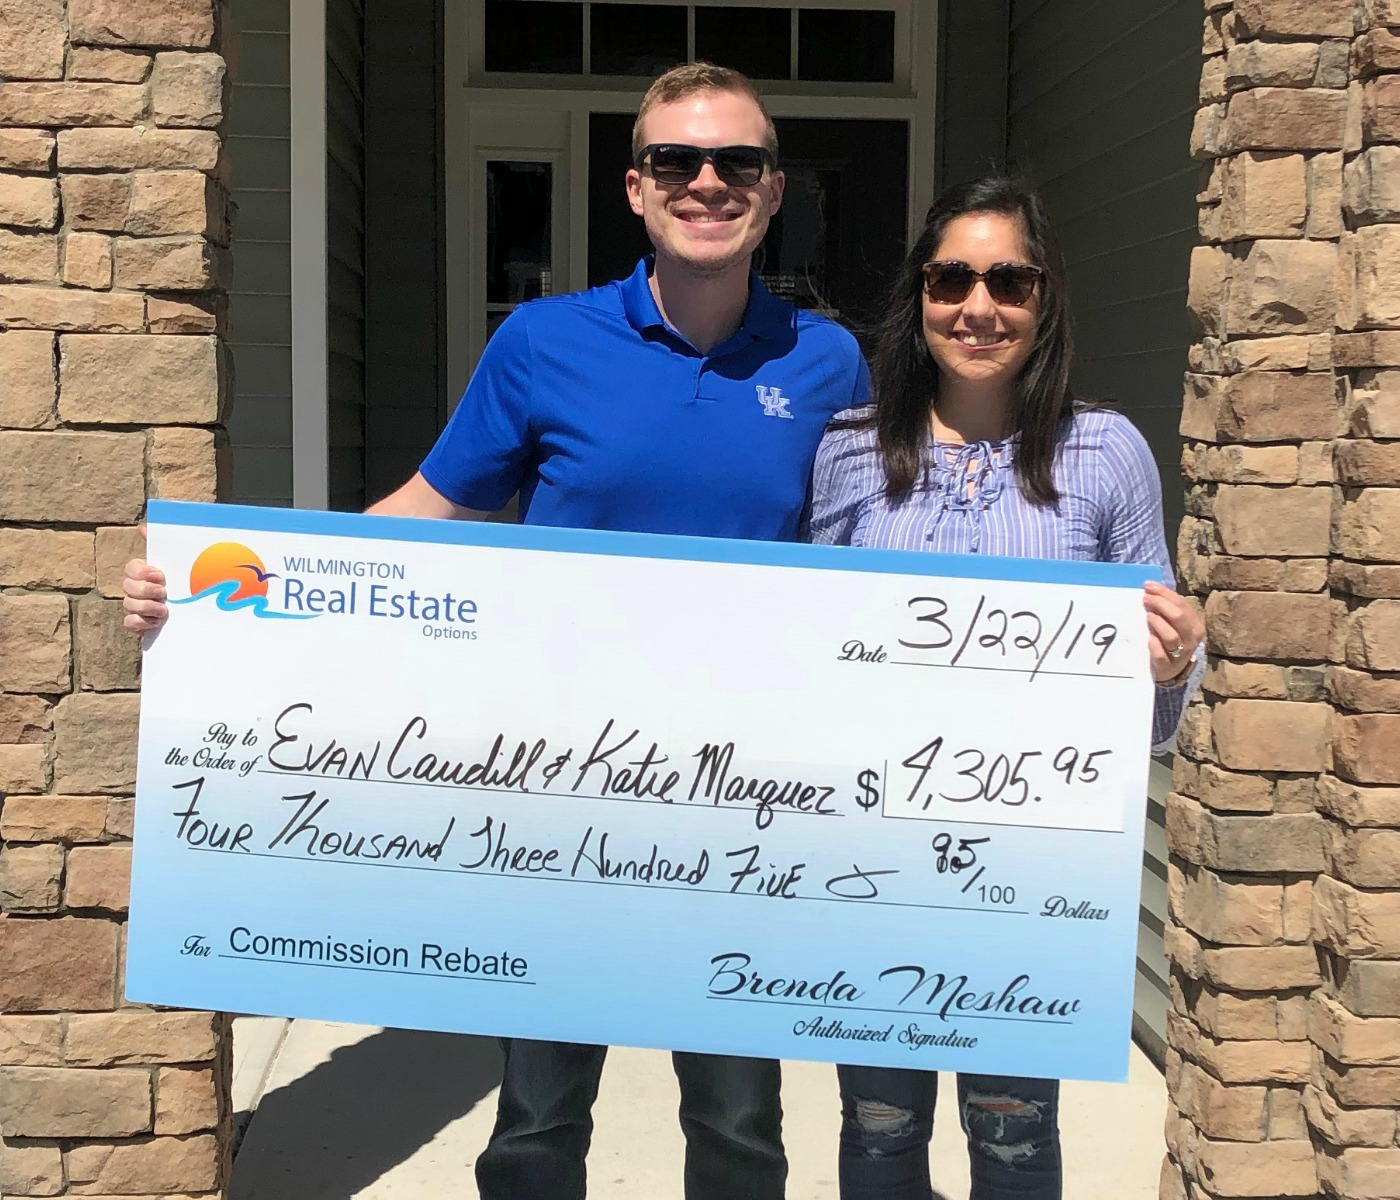 Home Buyer Rebate for Evan Caudill and Katie Marquez